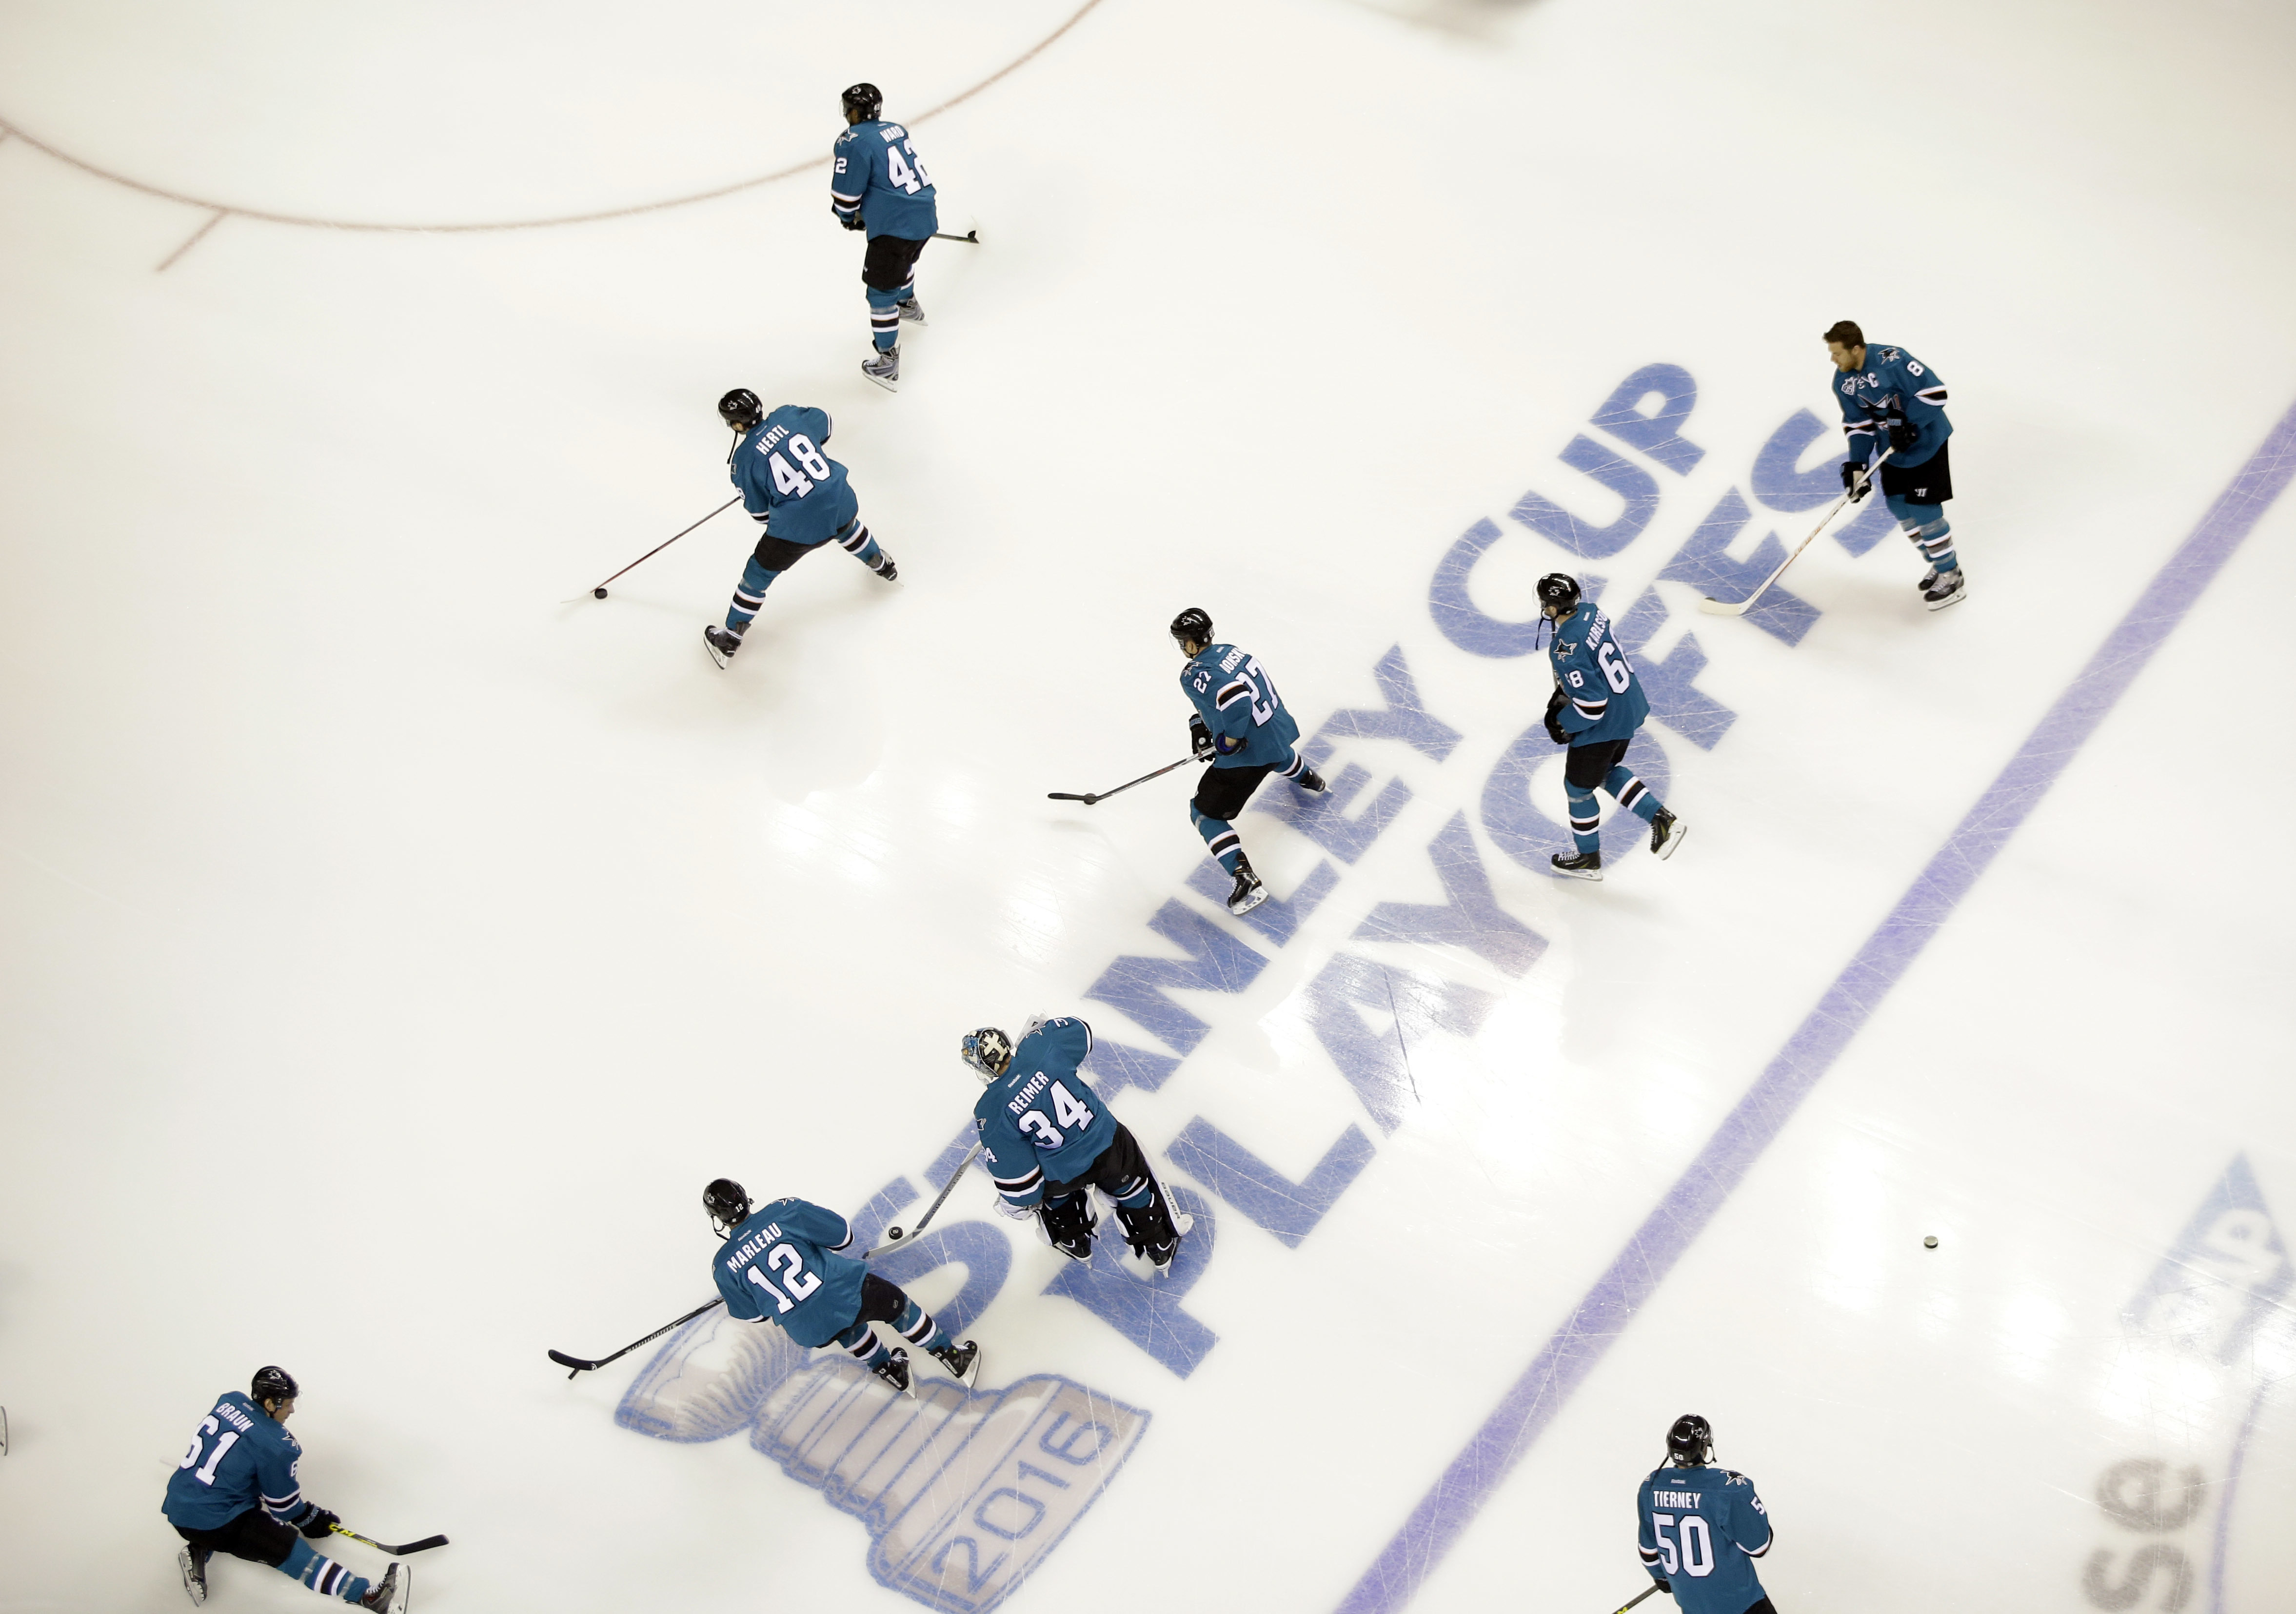 San Jose Sharks players warm up before Game 3 of an NHL hockey first-round Stanley Cup playoff series against the Los Angeles Kings Monday, April 18, 2016, in San Jose, Calif. (AP Photo/Marcio Jose Sanchez)